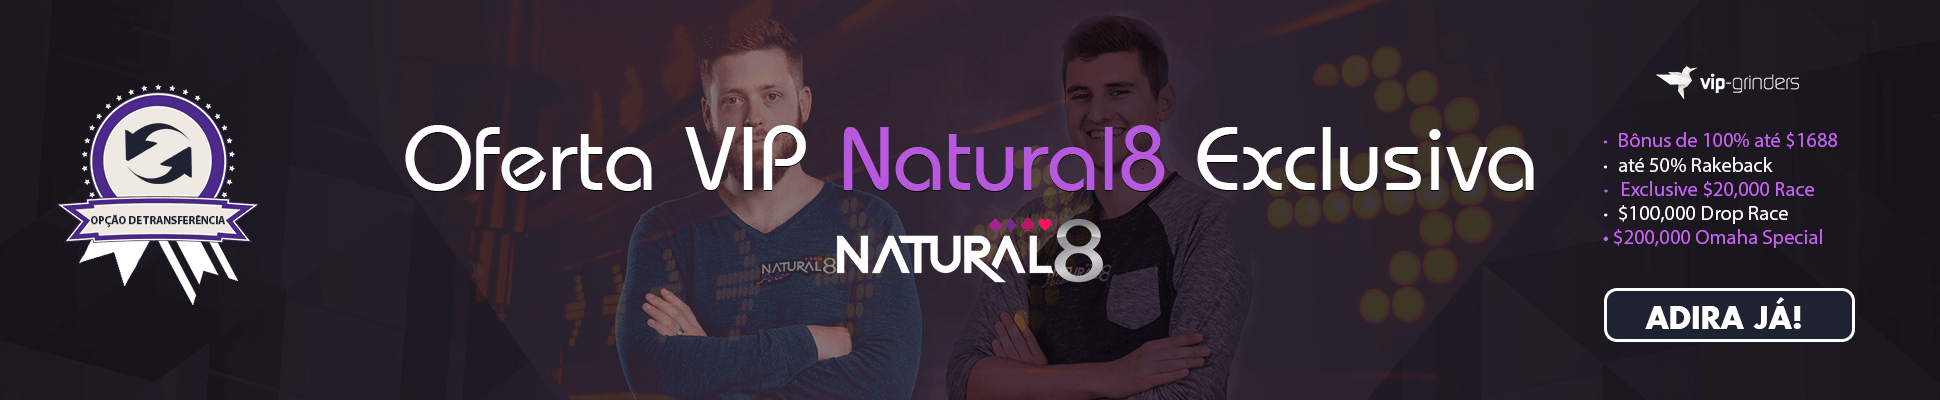 natural8-slider-created-August